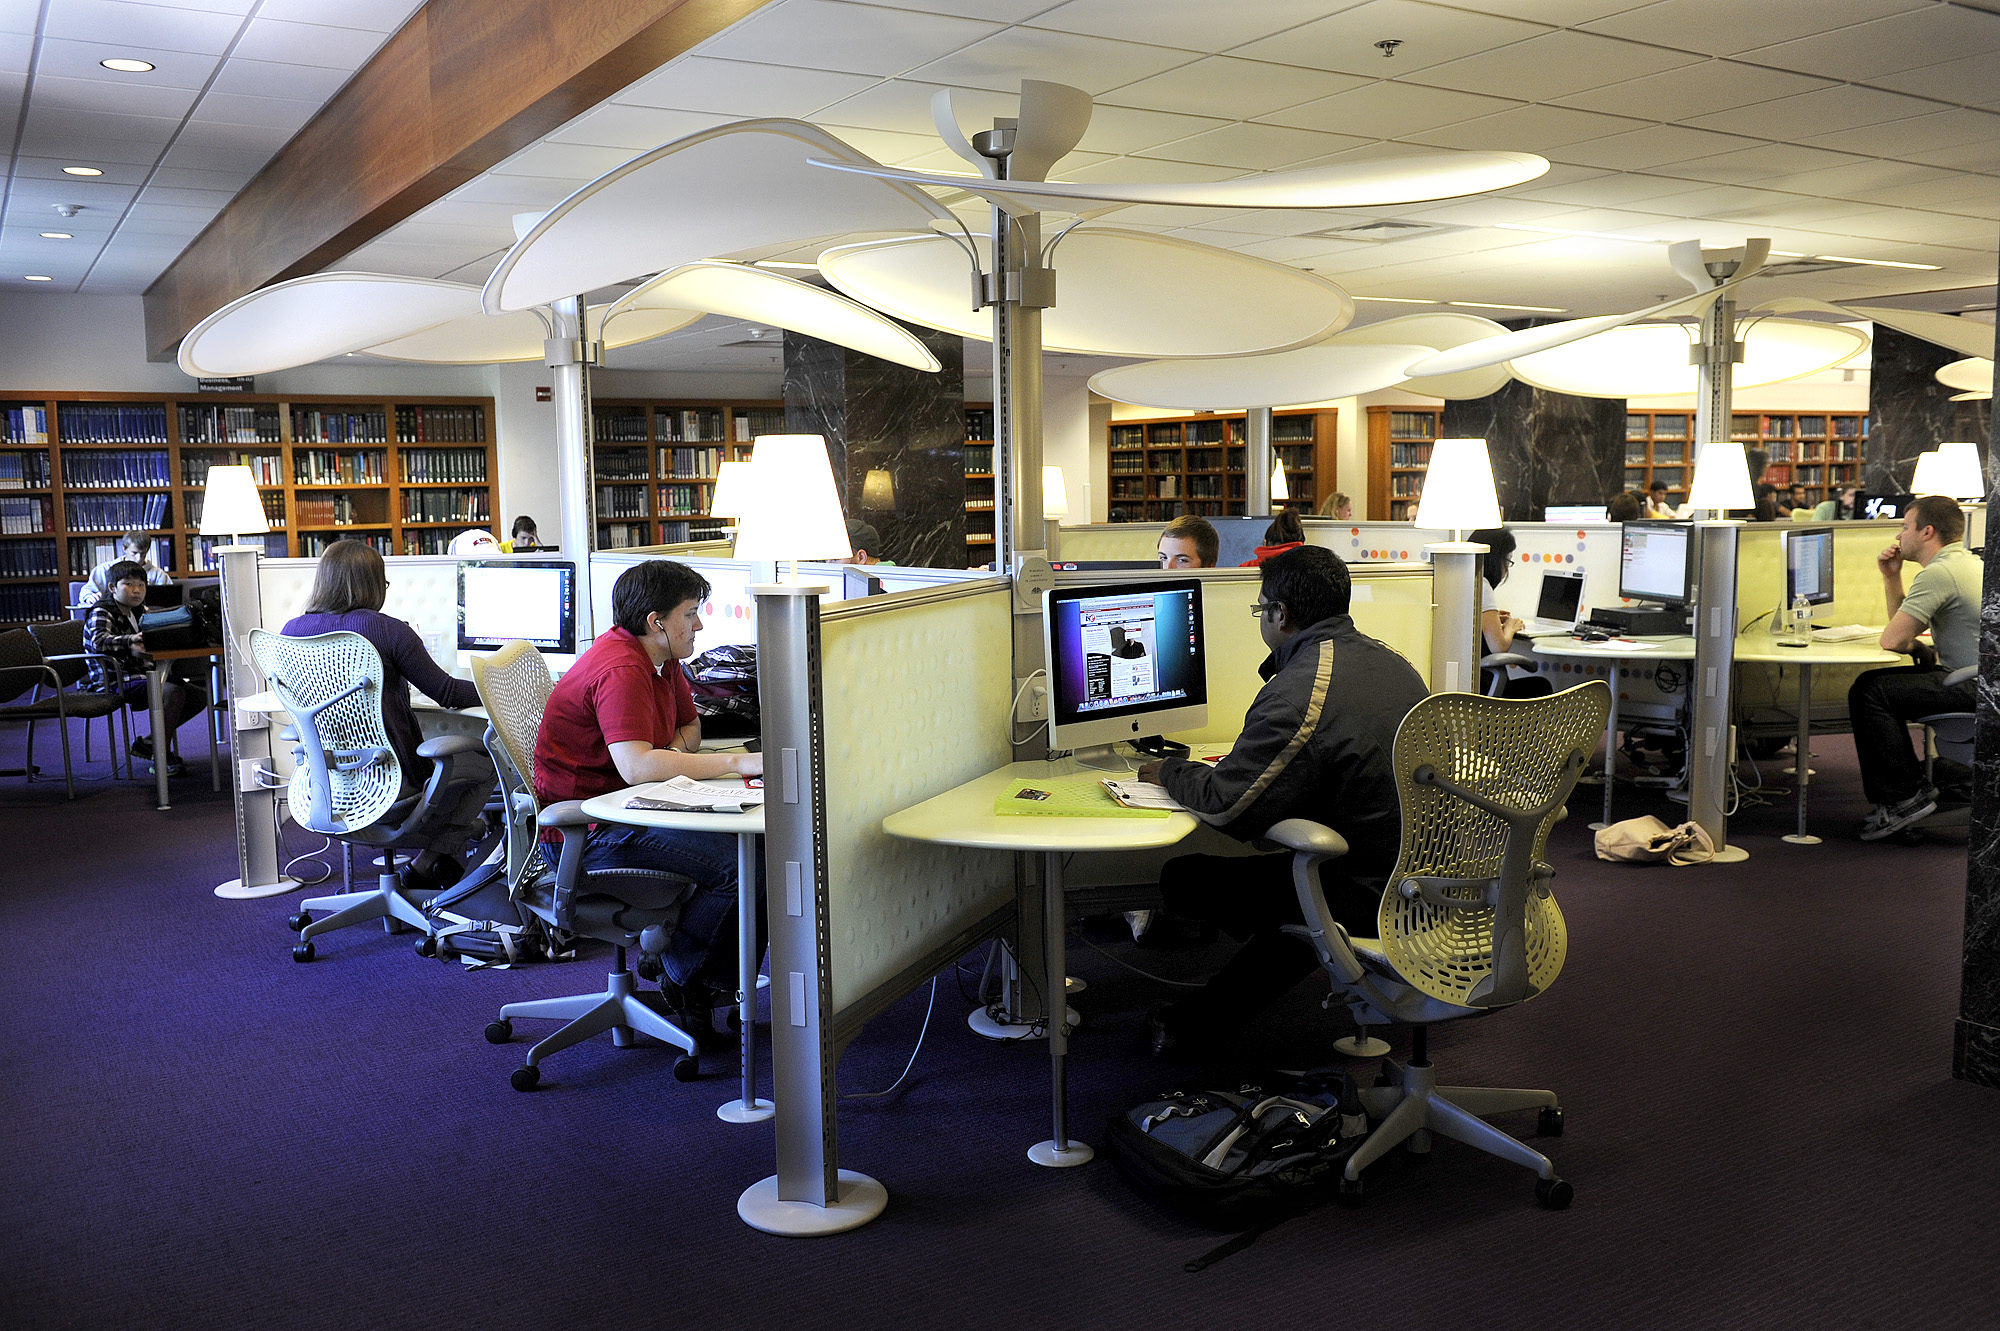 Students work at pods in the learning commons